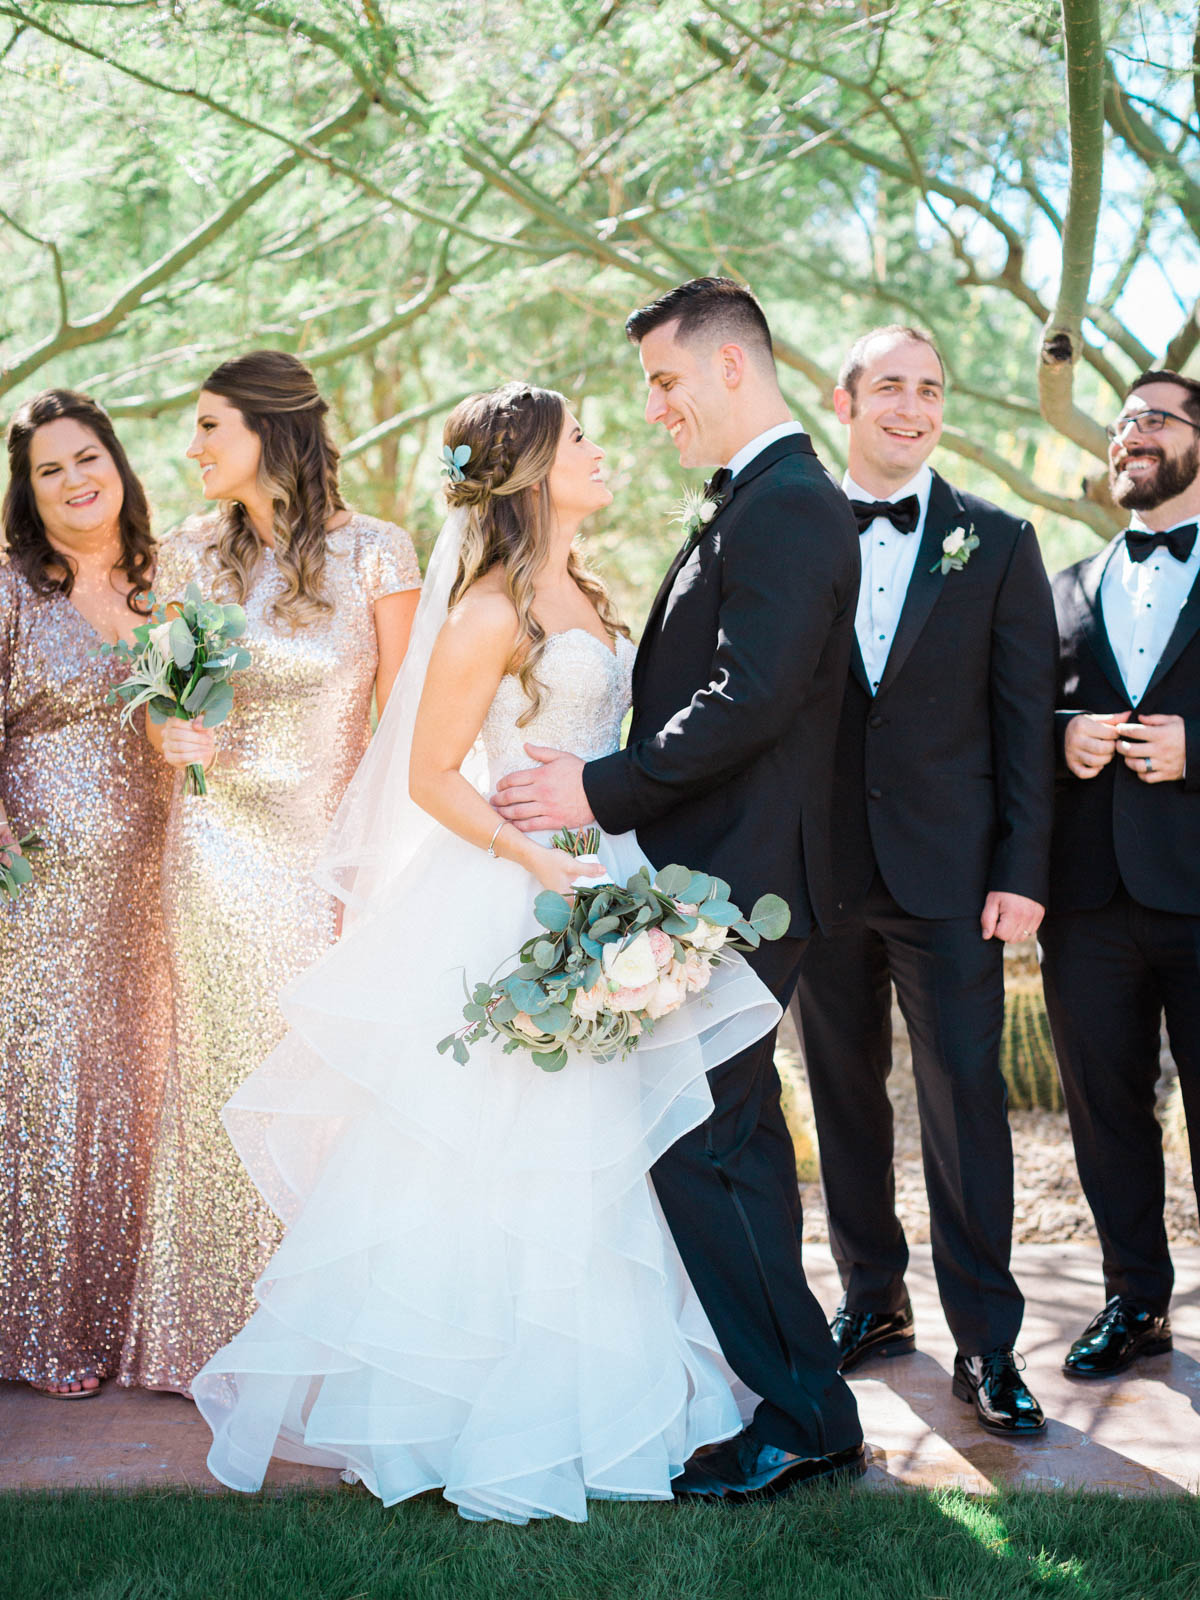 Jw marriott Starr Pass wedding party captured by Tucson Wedding Photographers Betsy & John